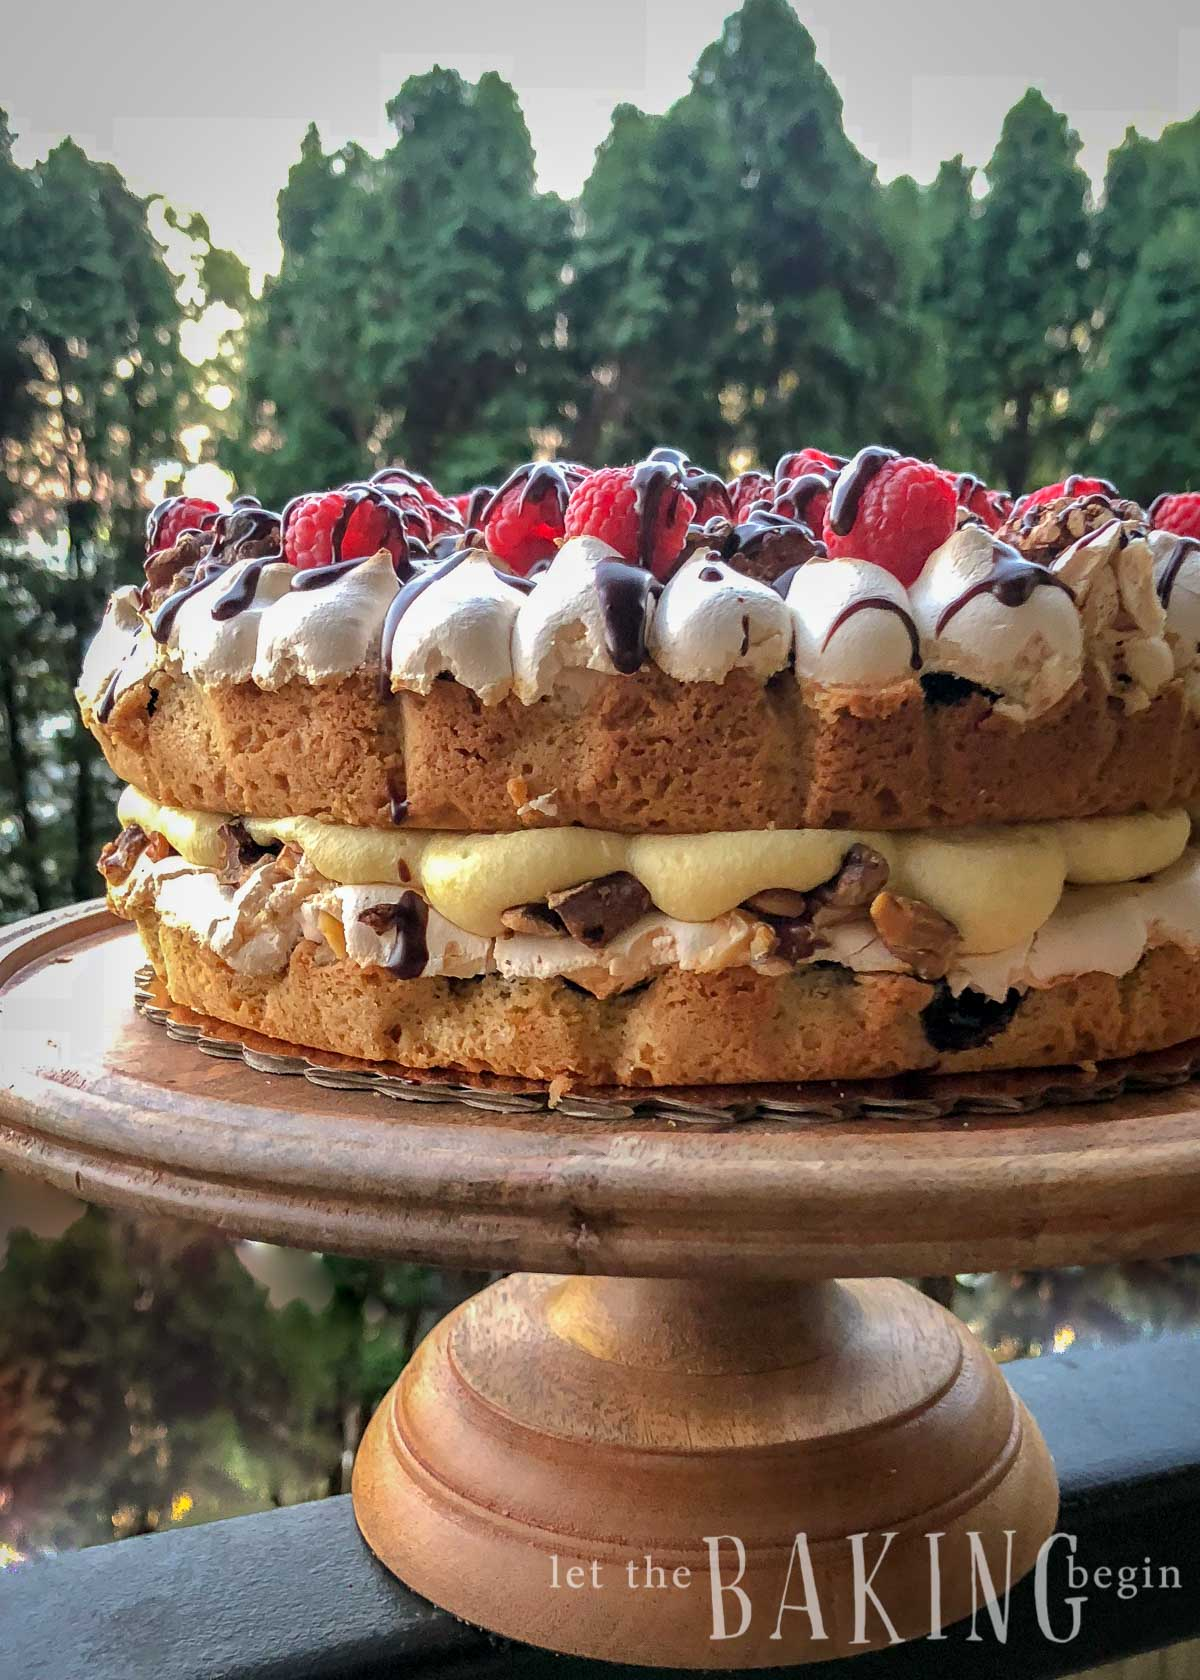 Pani Walewska is a polish cake made with shortbread meringue cake layers, nuts and custard. A family favorite for sure!